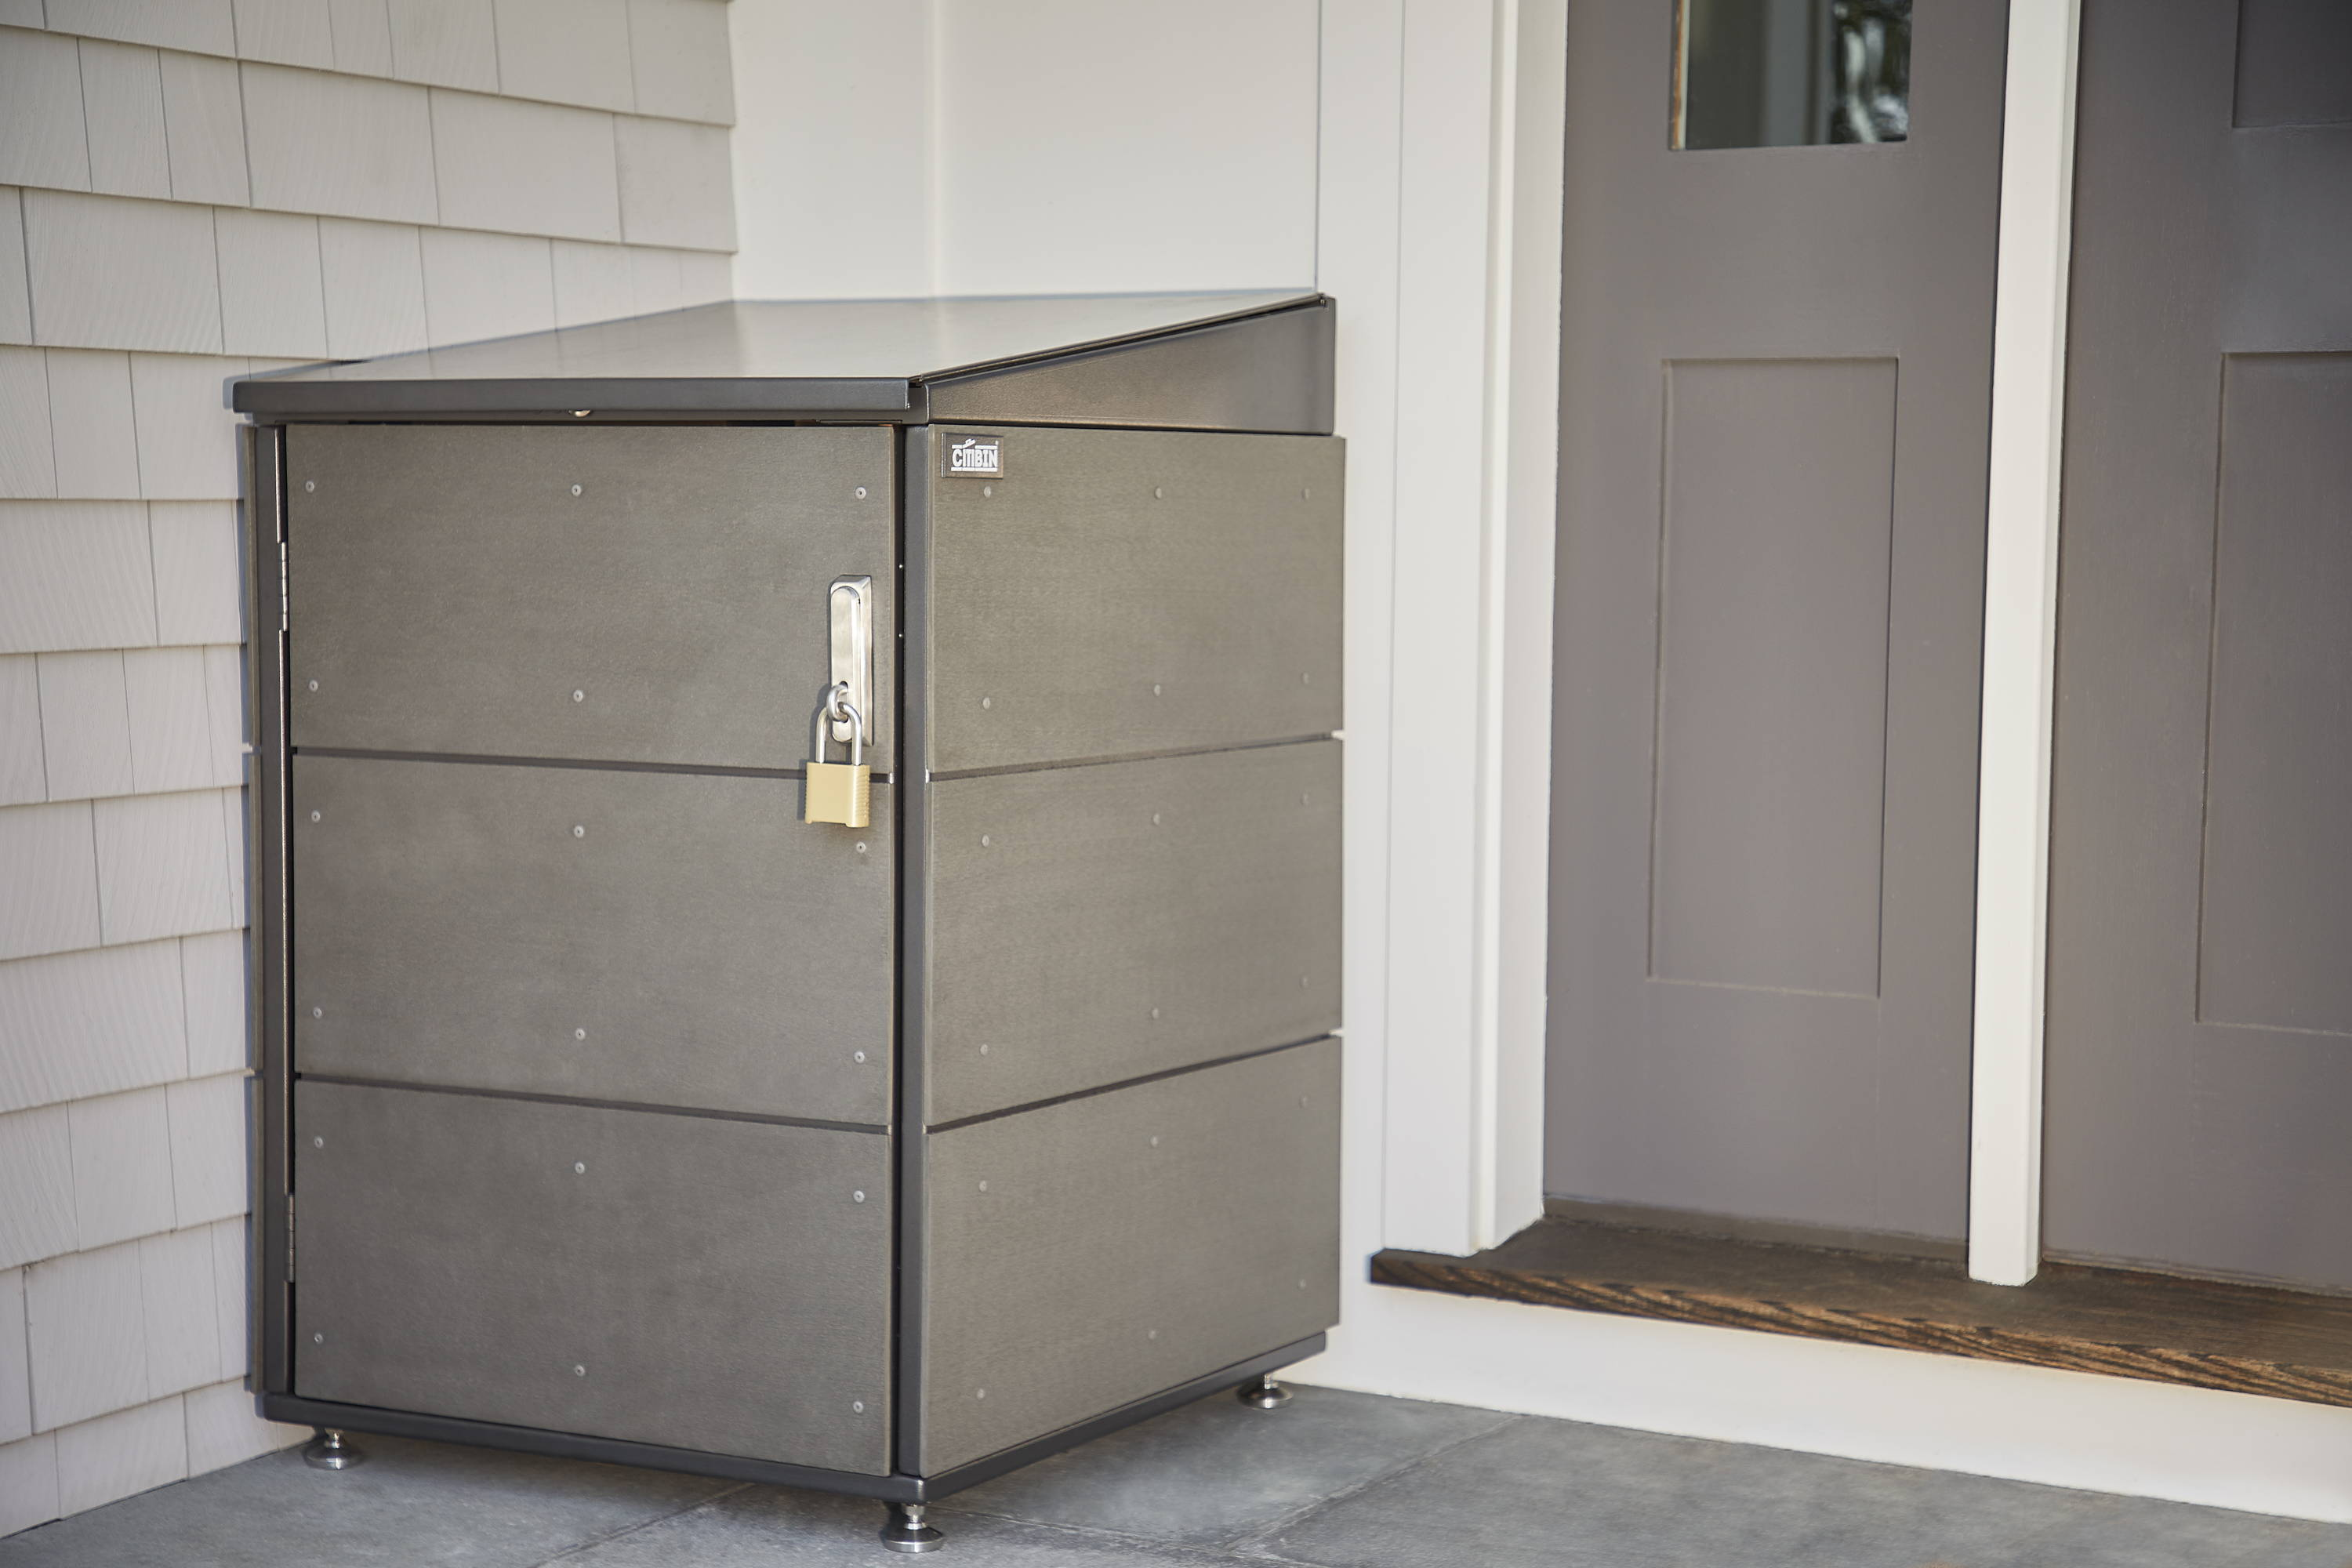 Package Delivery Lock Box For Home - Parcel Drop Box | CITIBIN